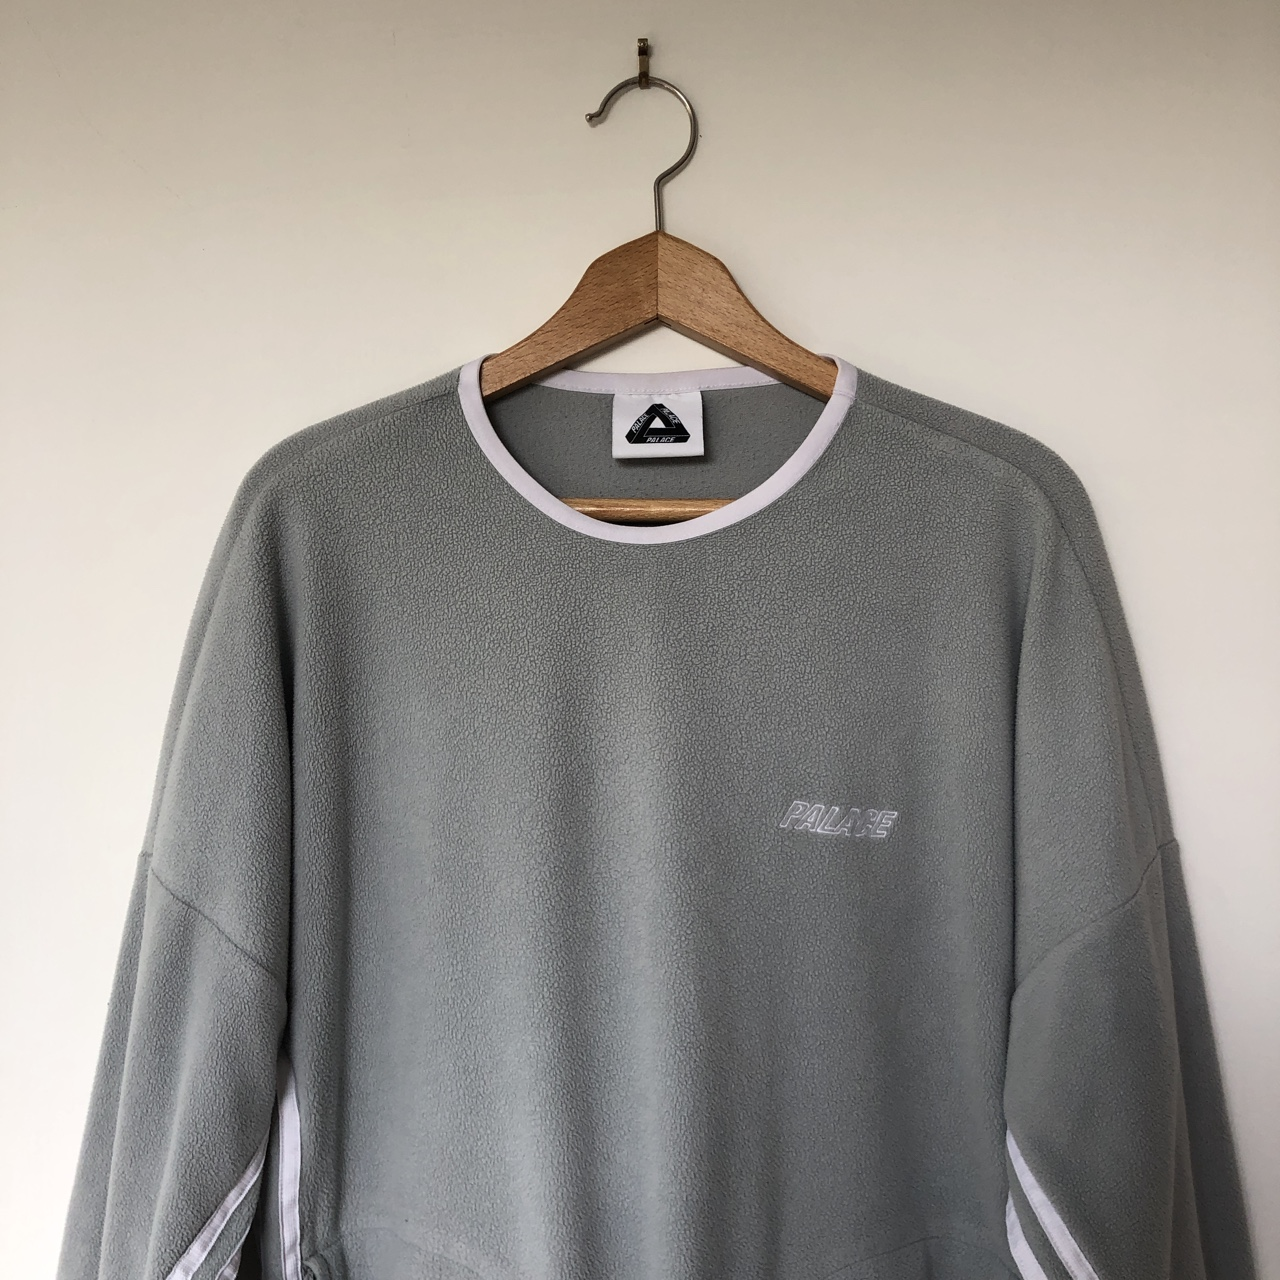 Men's Adidas x Palace Pullover. [Size M] Brand New Depop